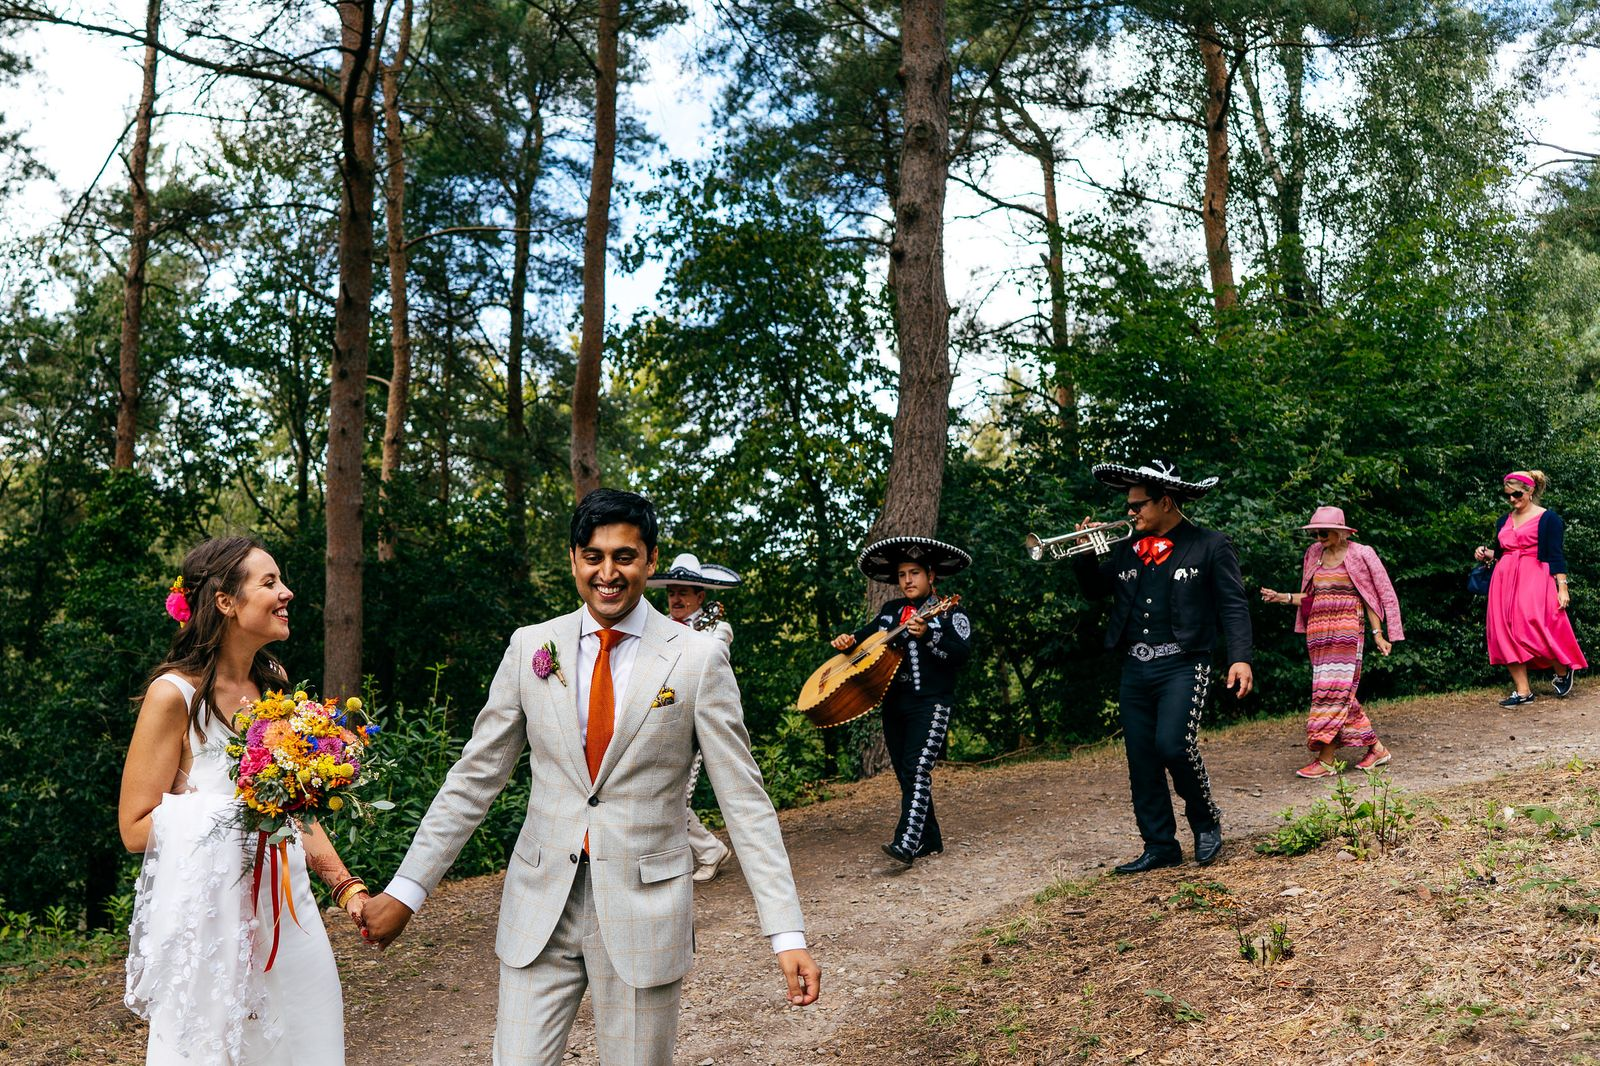 Newlyweds dance down the path at Hestercombe Gardens with musicians